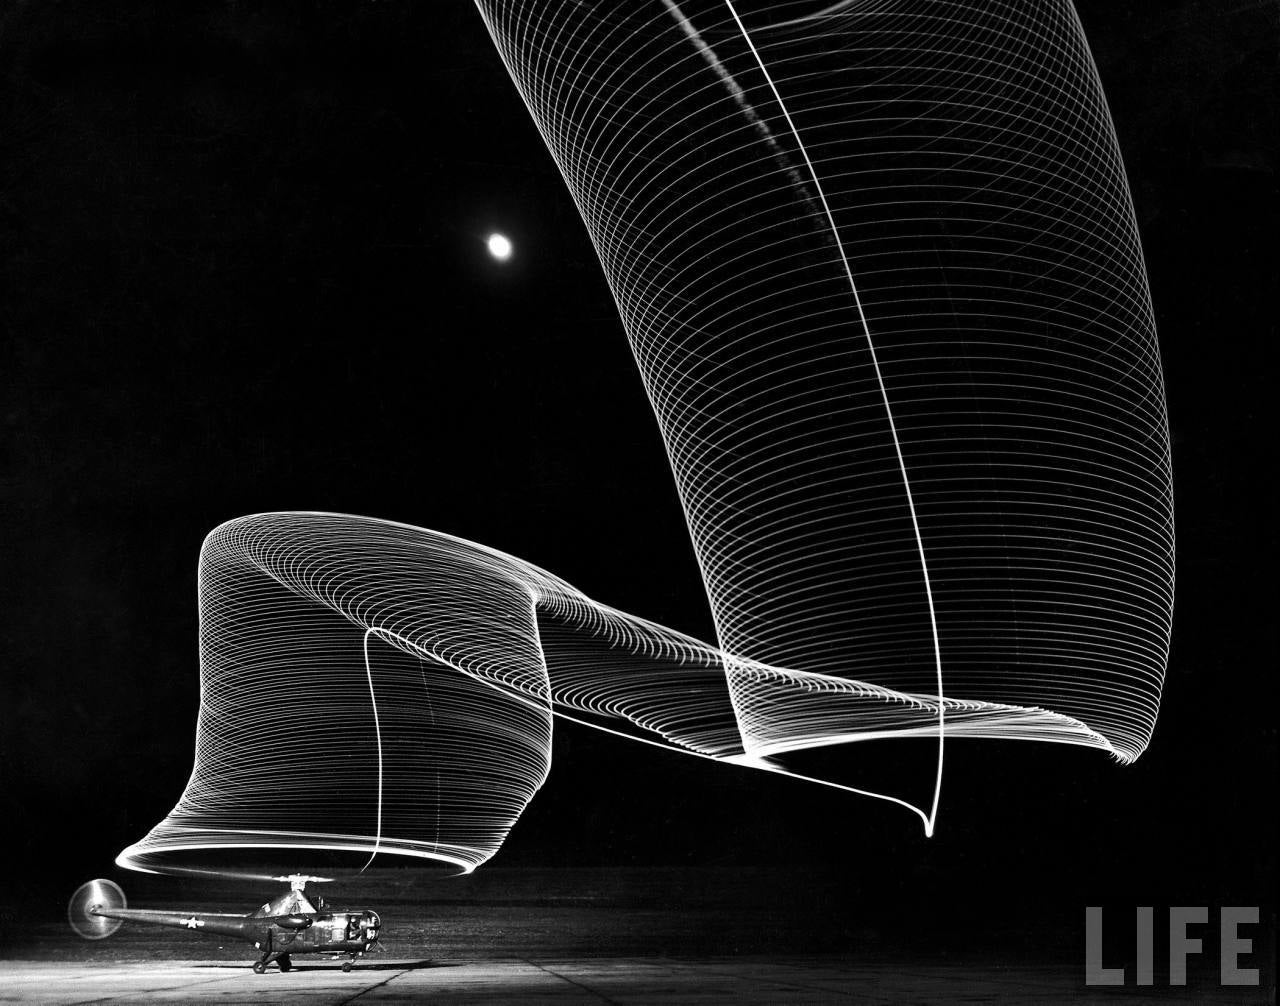 This Light Painting Pays Tribute to a Classic 1949 Navy Photograph